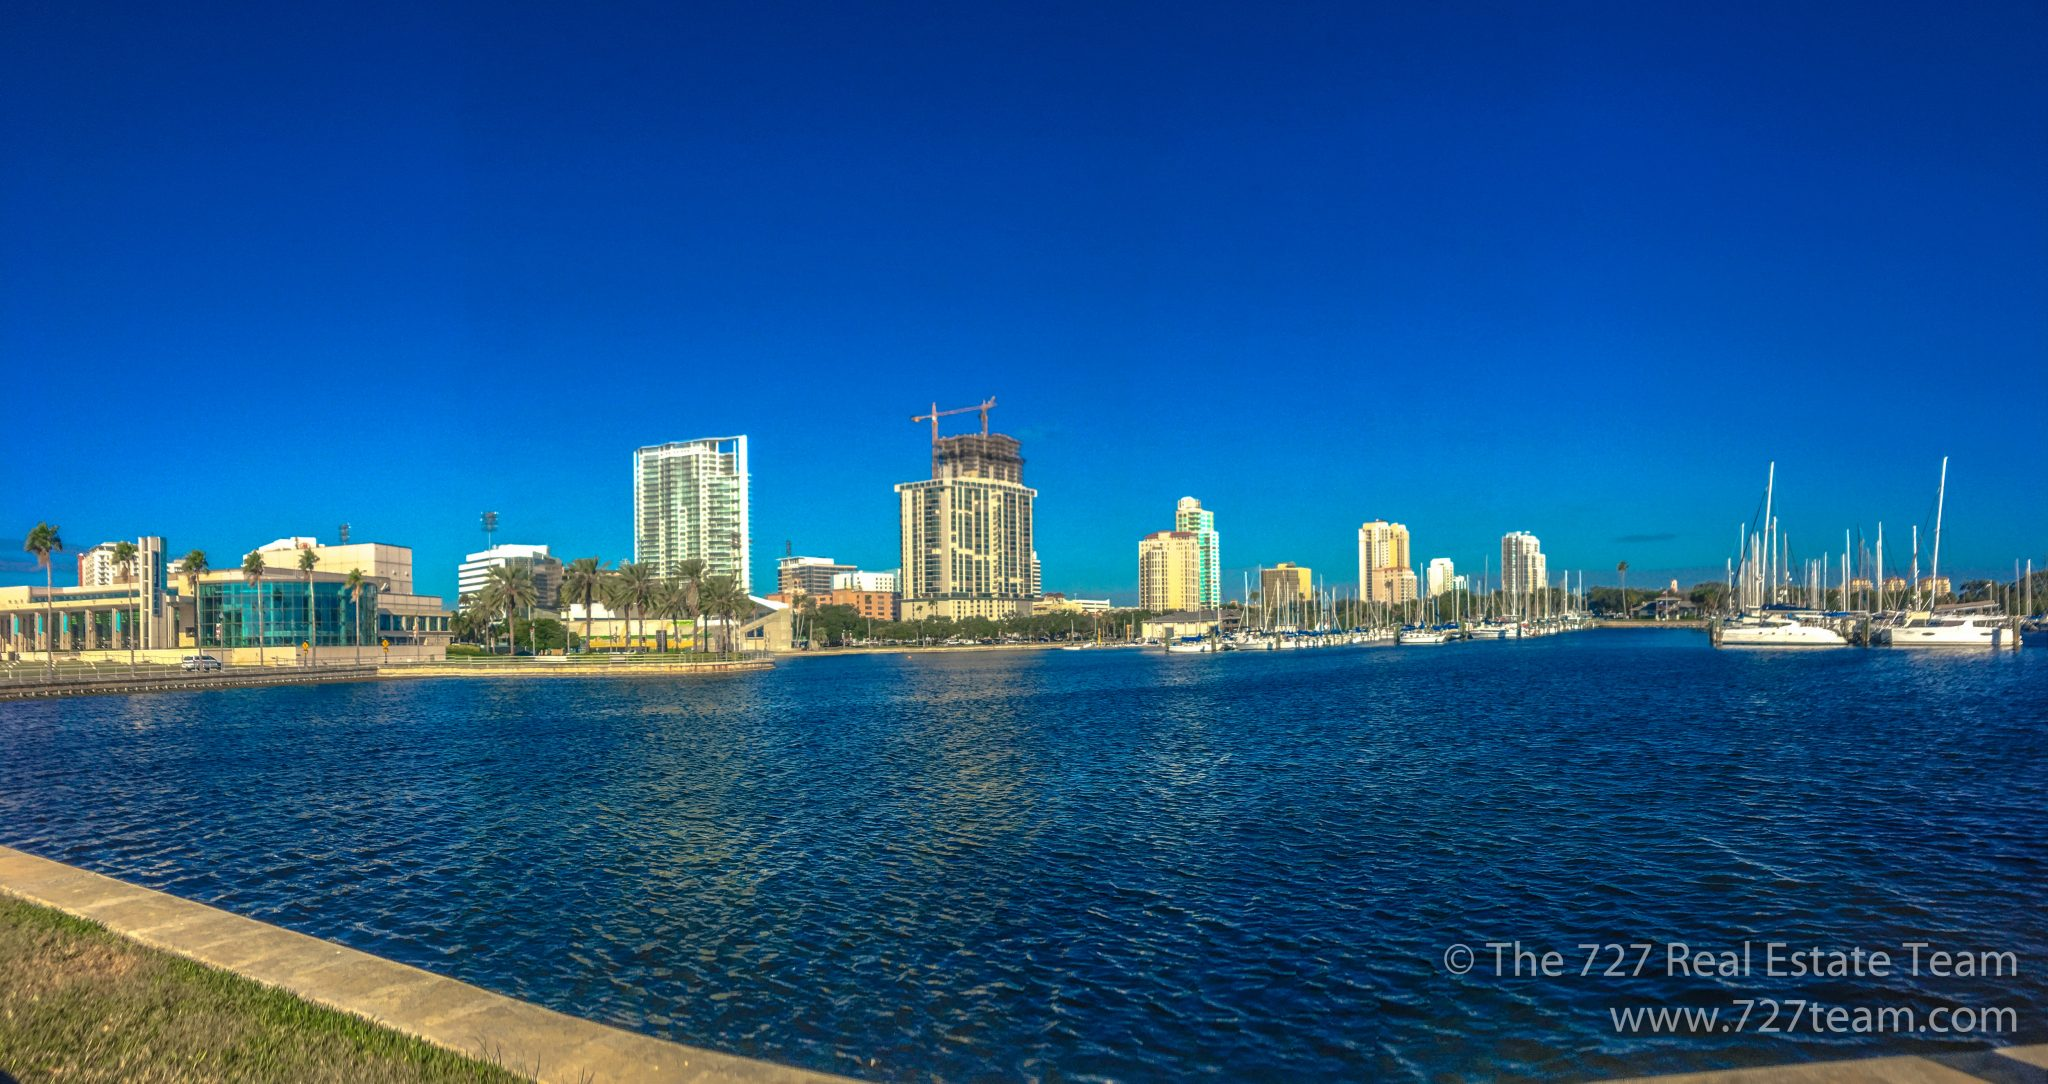 Tampa Bay St Pete Downtown